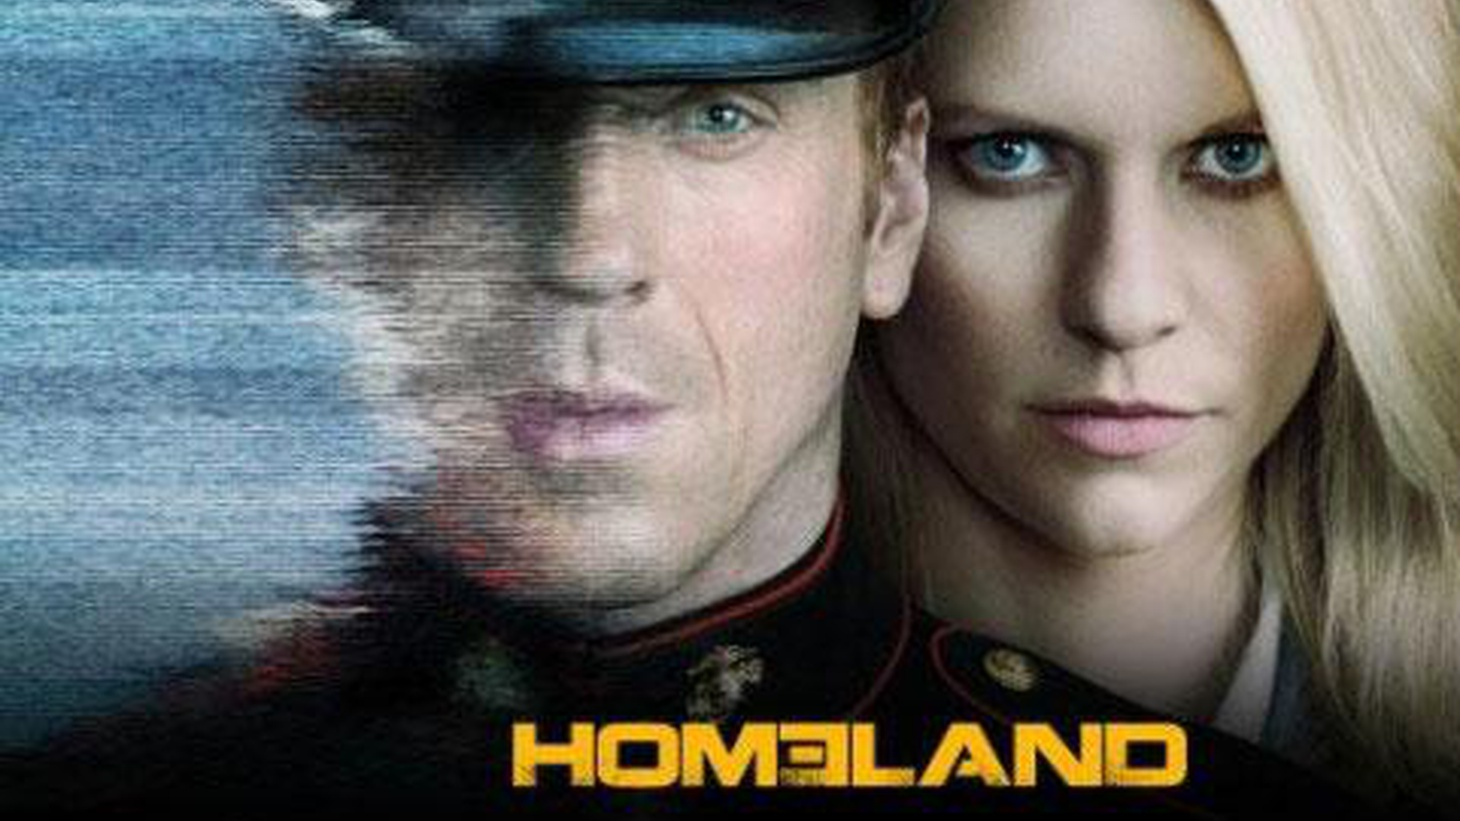 Howard Gordon, co-creator of Homeland and former show-runner of 24, talks about how both of these shows tapped into the very different zeitgeist of the day.